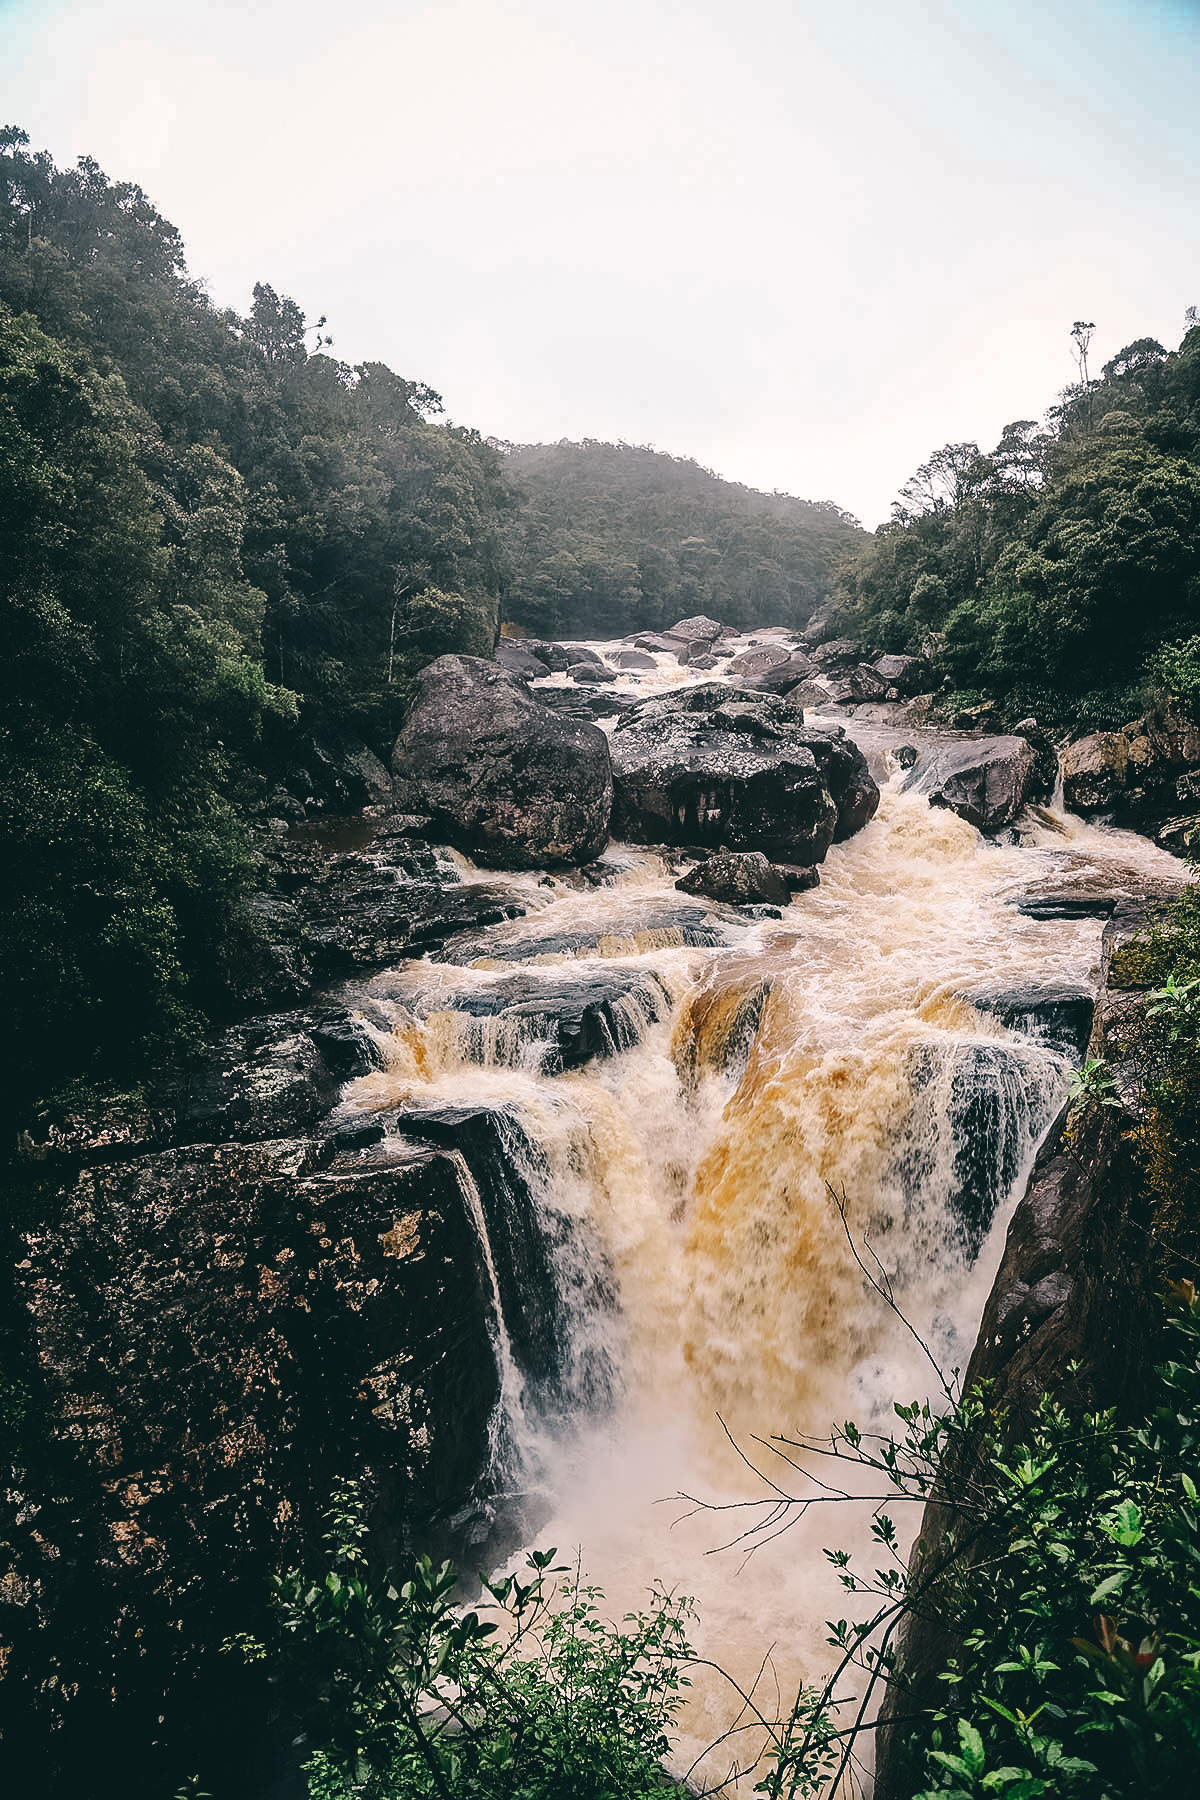 Wasserfall in Madagaskar